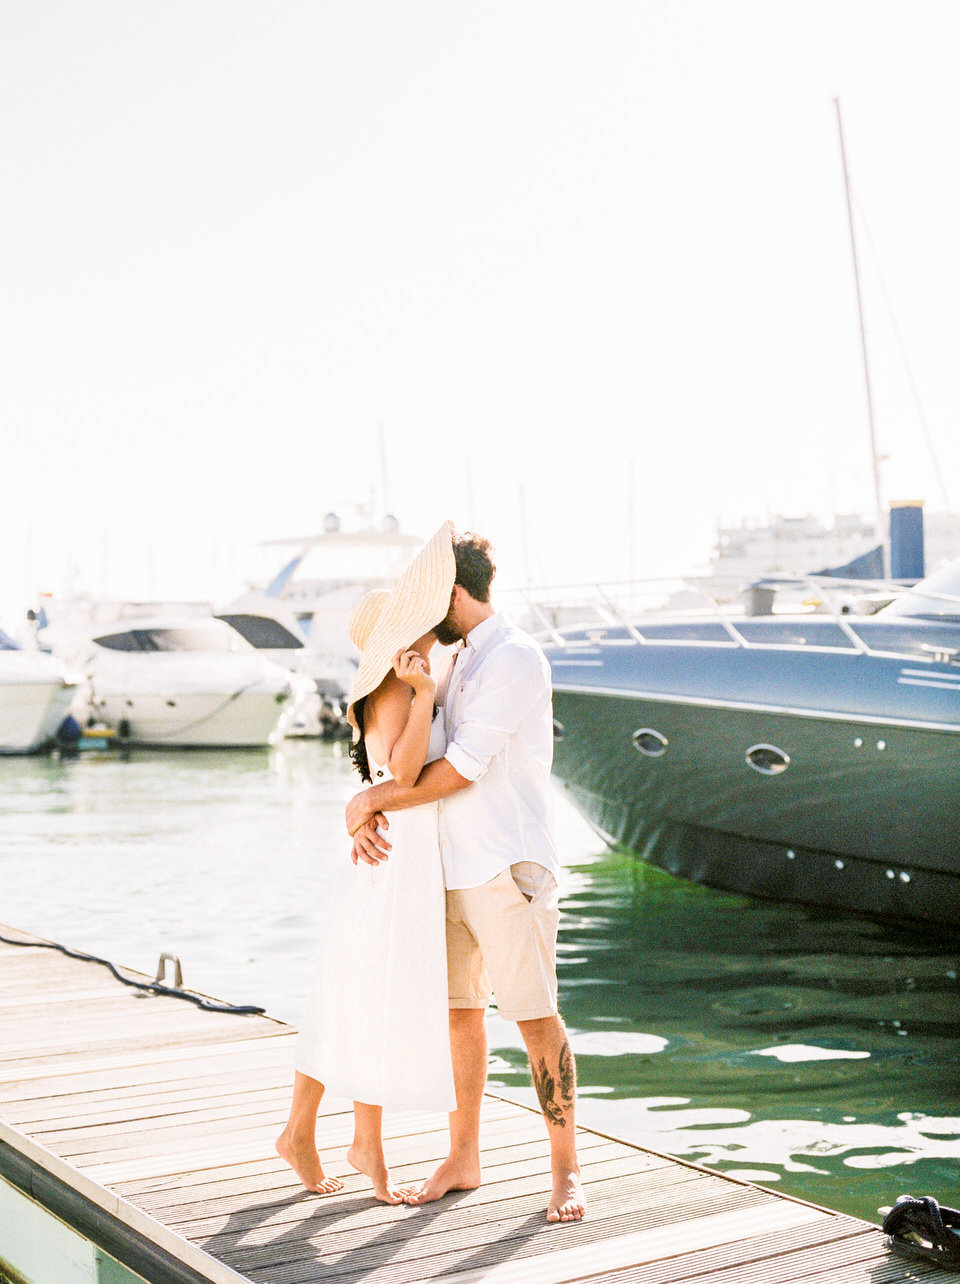 Luxury-Yacht-Engagement-Session-in-Algarve-Portugal-052